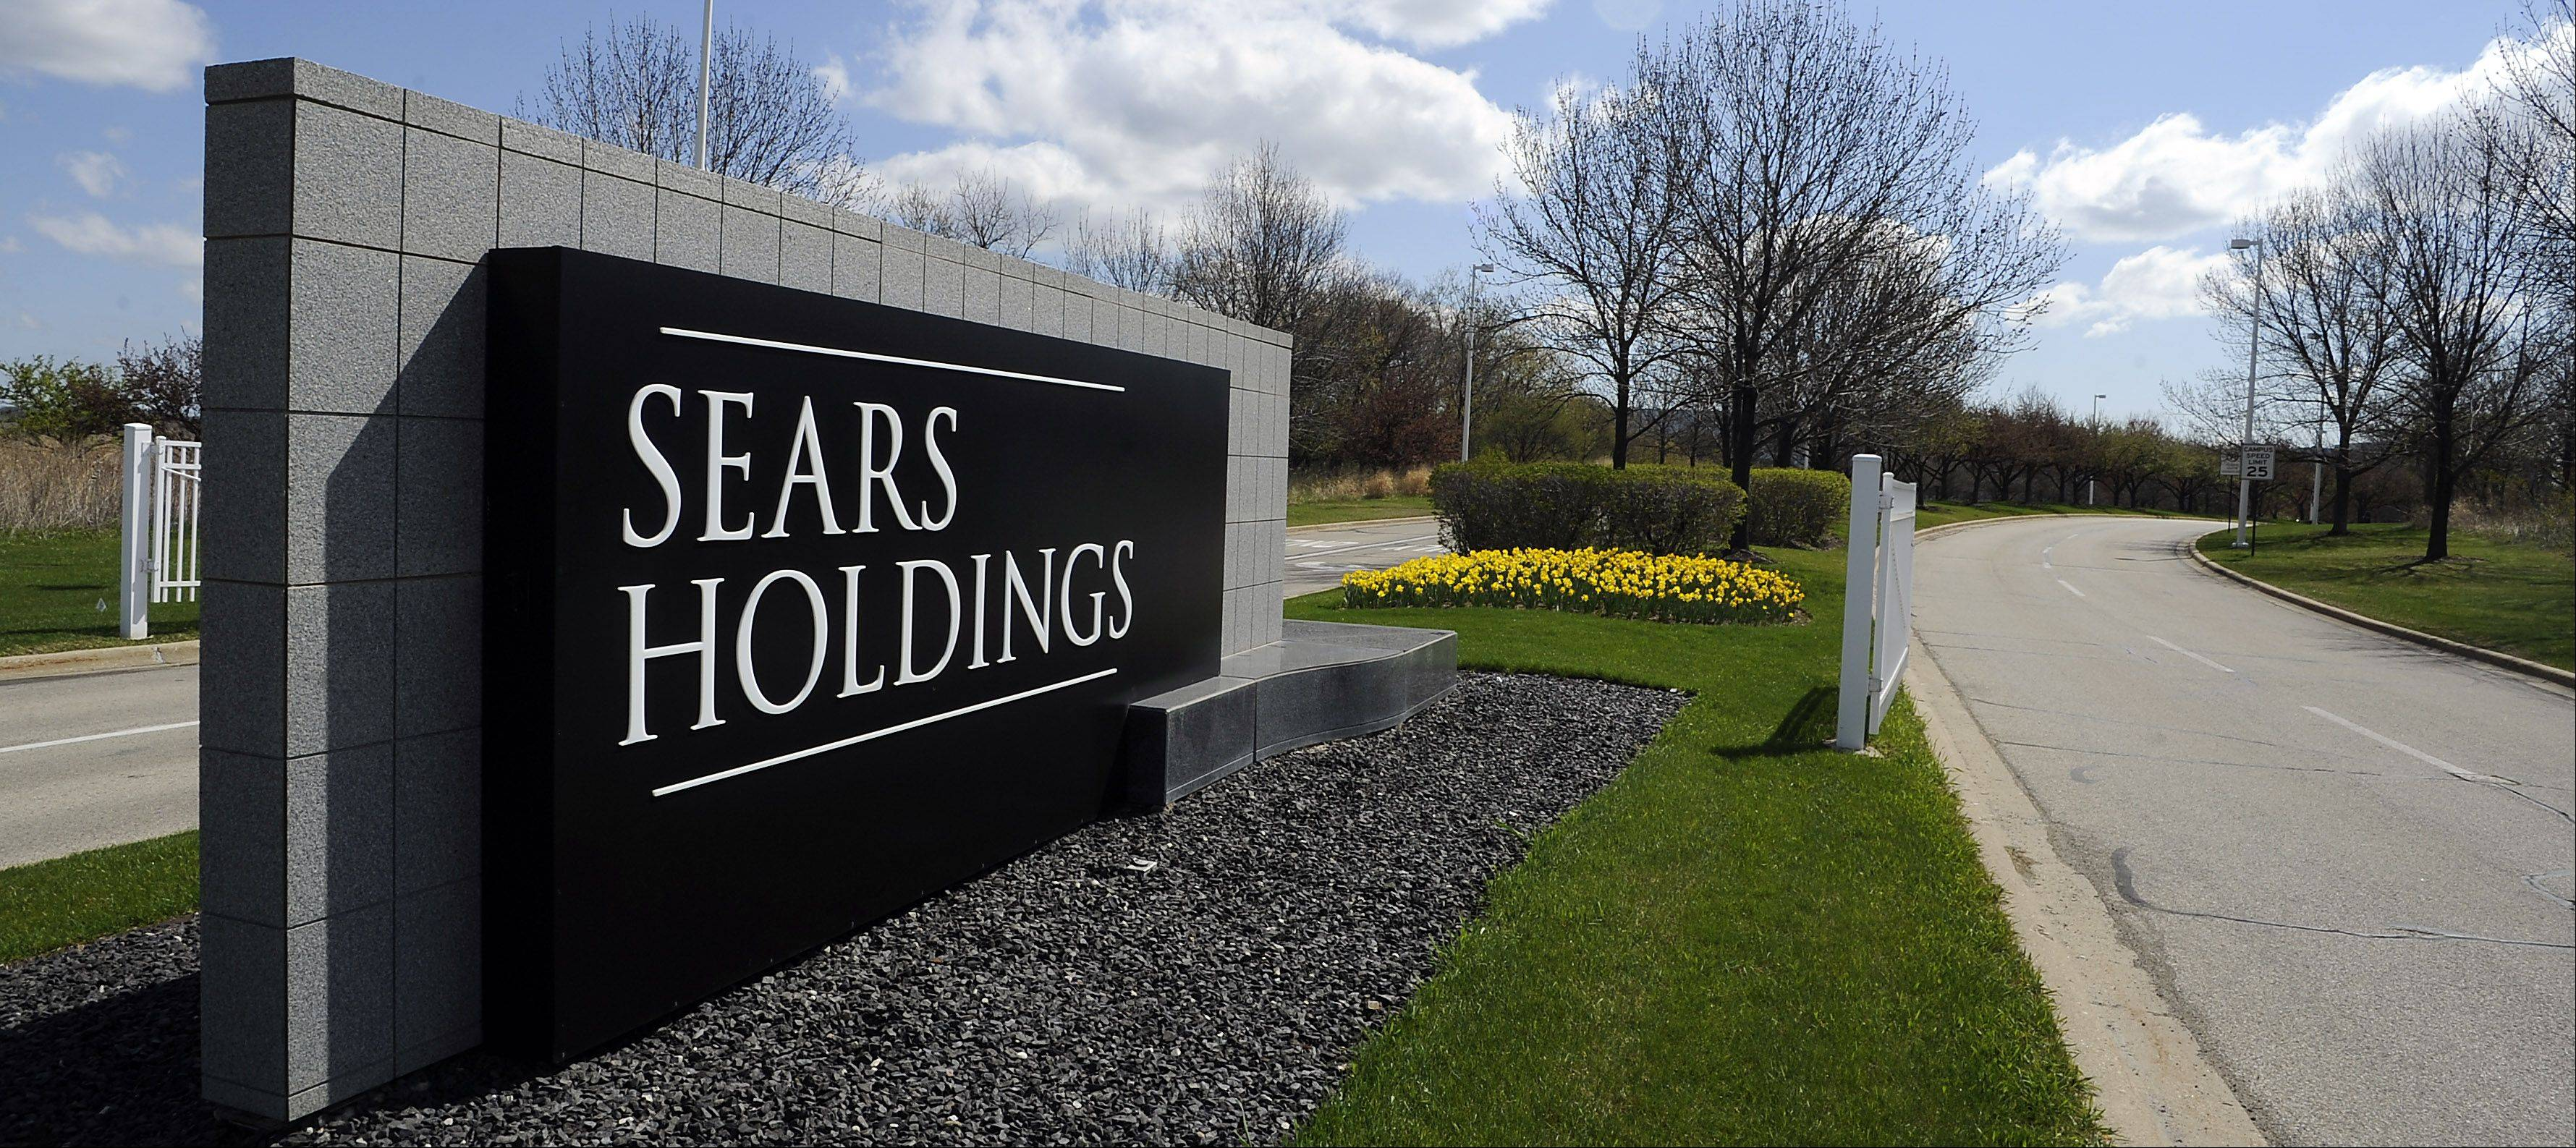 Mark Welsh/mwelsh@dailyherald.com ¬ Hoffman Estates officials are worried that Sears Holdings might just be packing their bags and heading out of town leaving the Prairie Stone campus area in Hoffman Estates.